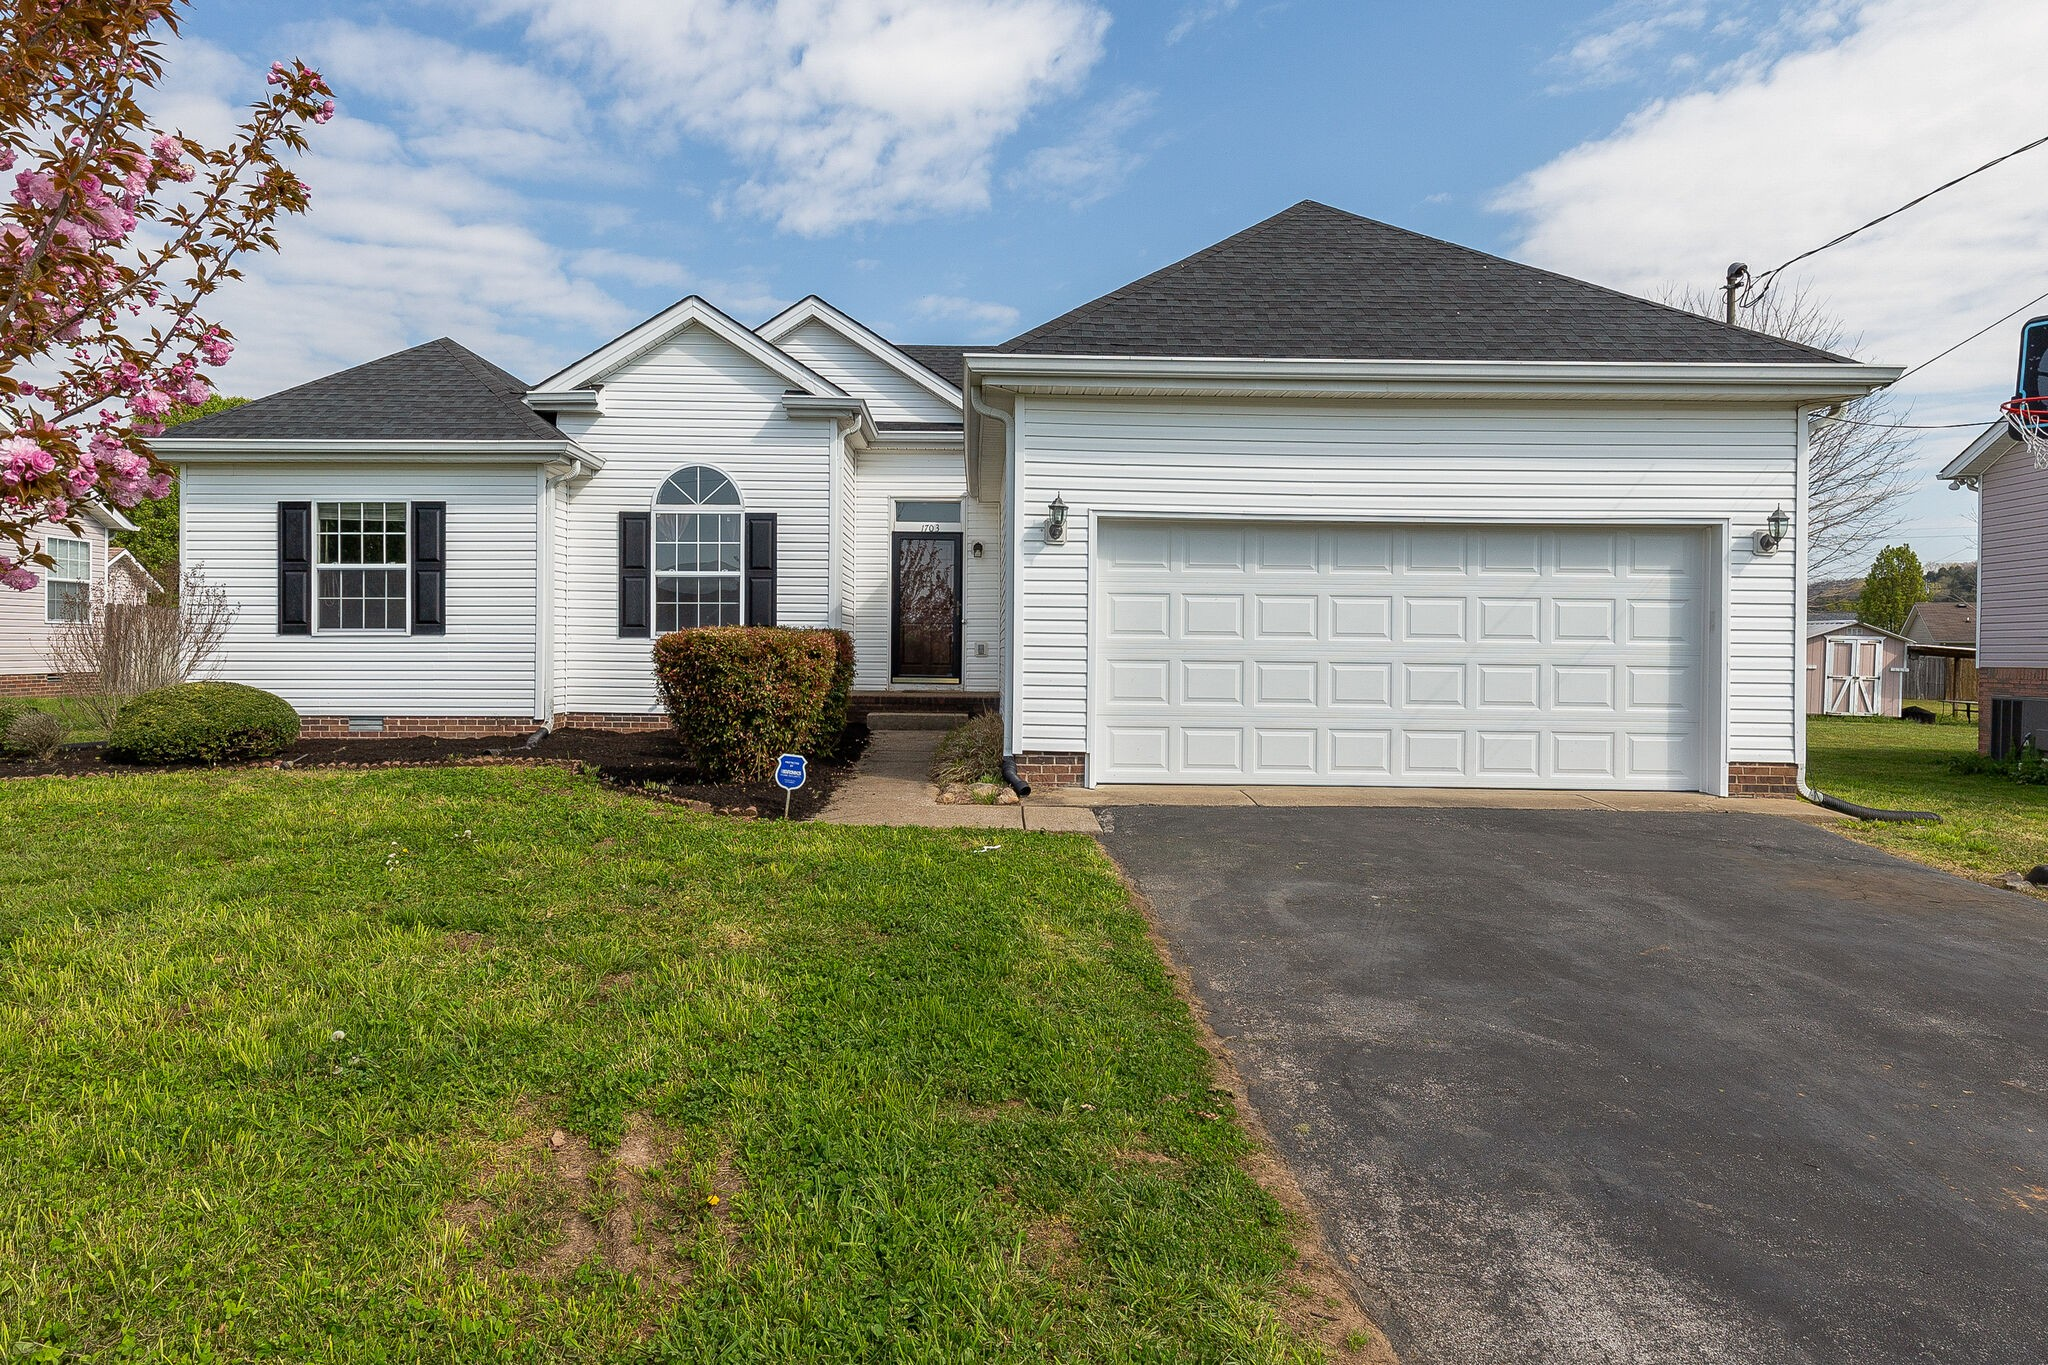 This one-level 3 bedroom 2 bathroom home is ready for its' new owner! Featuring a great floor plan, all appliances included, fenced in back yard and covered back porch. The neighborhood is convenient to shopping, dining, and the bypass. Roof was replaced in 2019. Offers due 4/12 by 8 pm, Seller will respond by 1 pm on 4/13